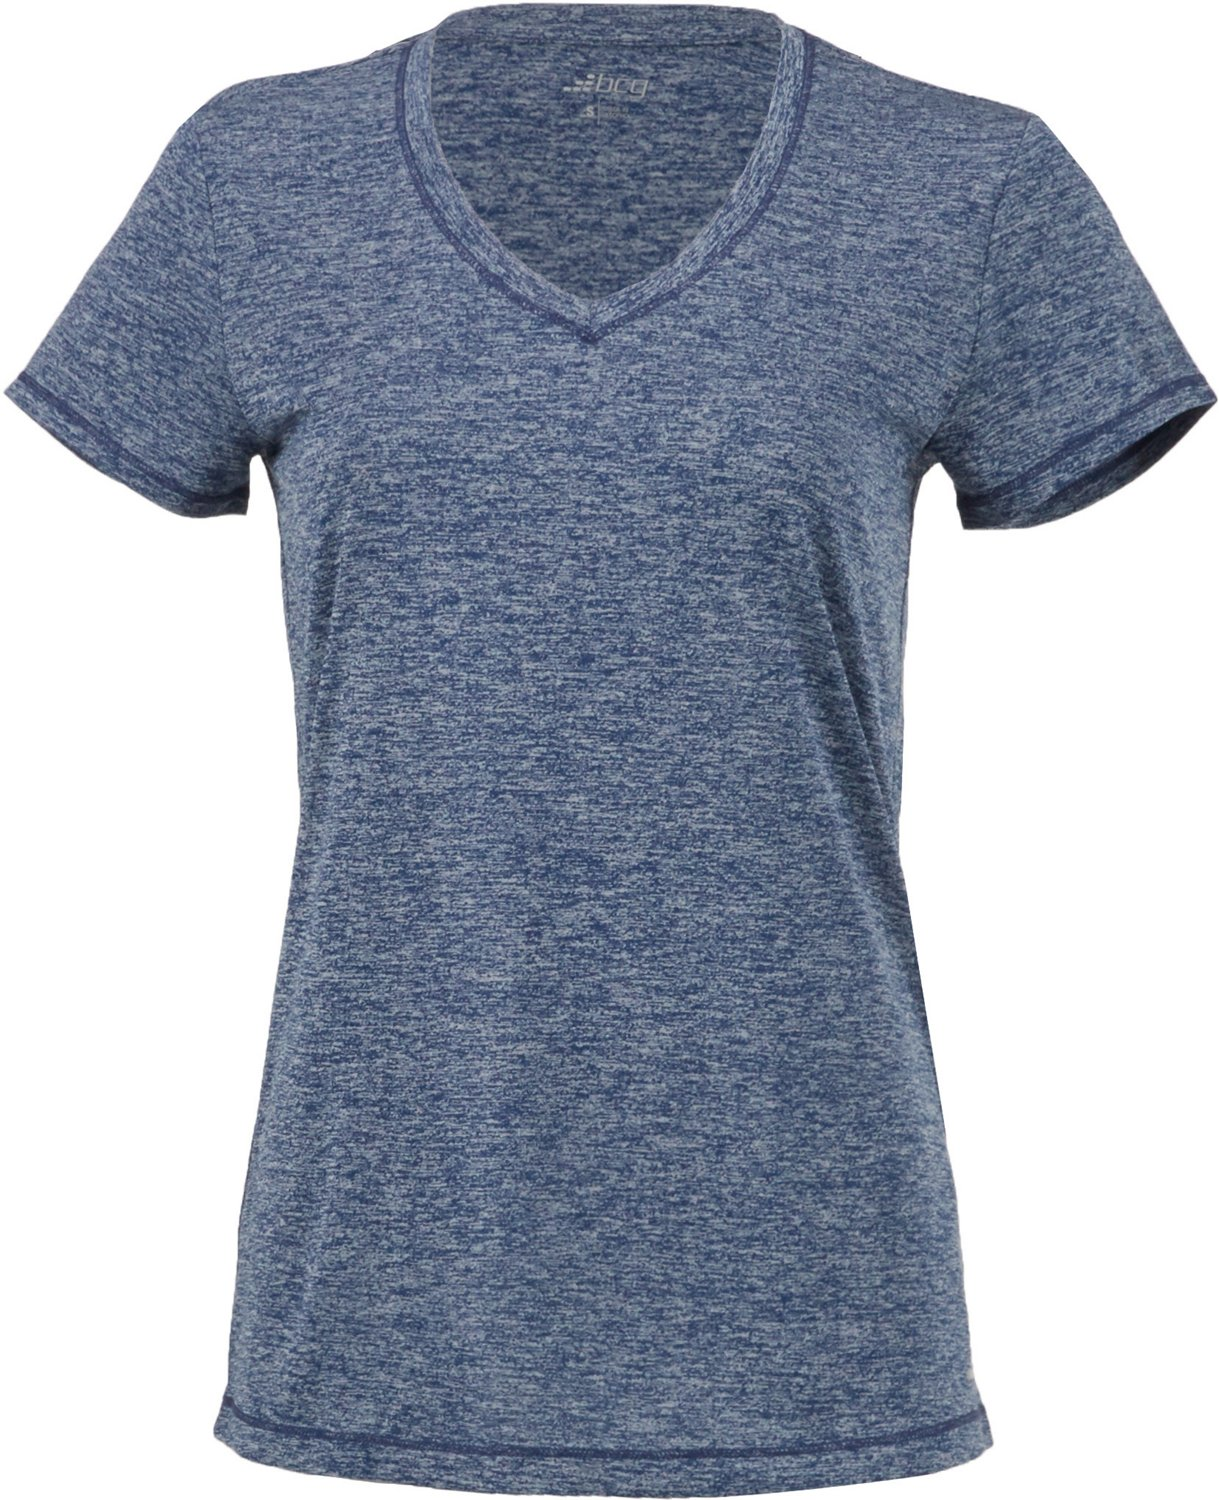 Shirts For Women Academy